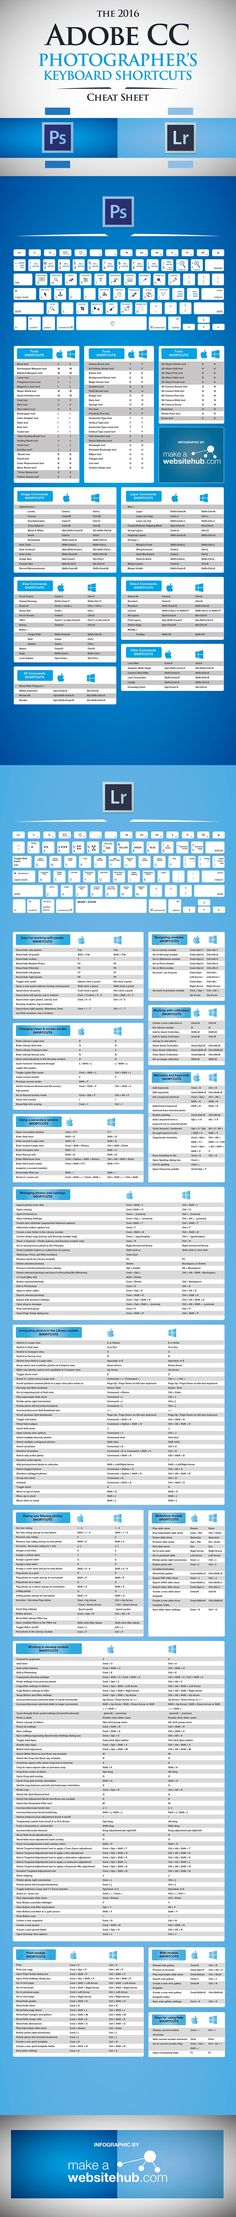 The 2016 Photoshop & Lightroom Keyboard Shortcuts Cheat Sheet